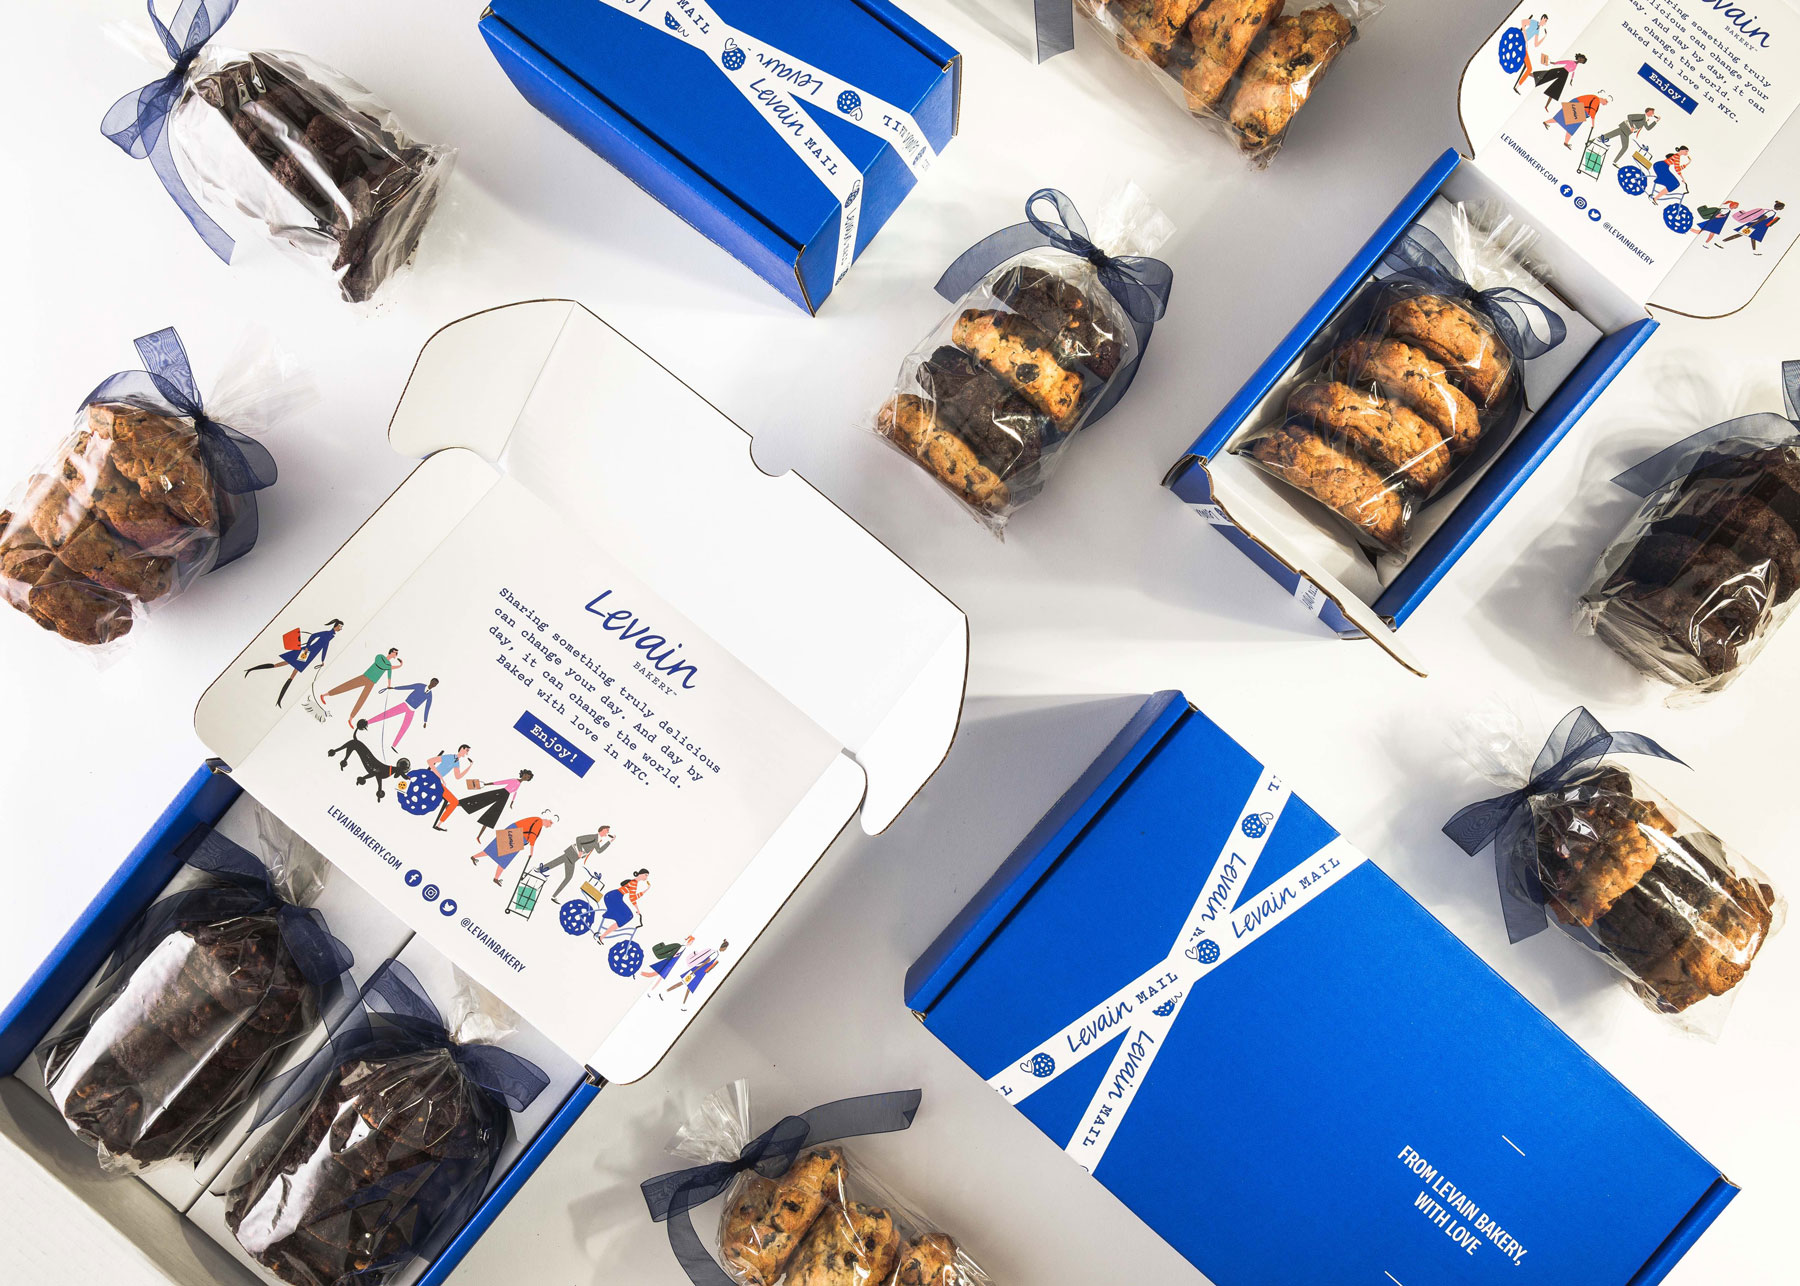 Best gifts for men, gift ideas for men - Levain Bakery Signature Cookie Assortment